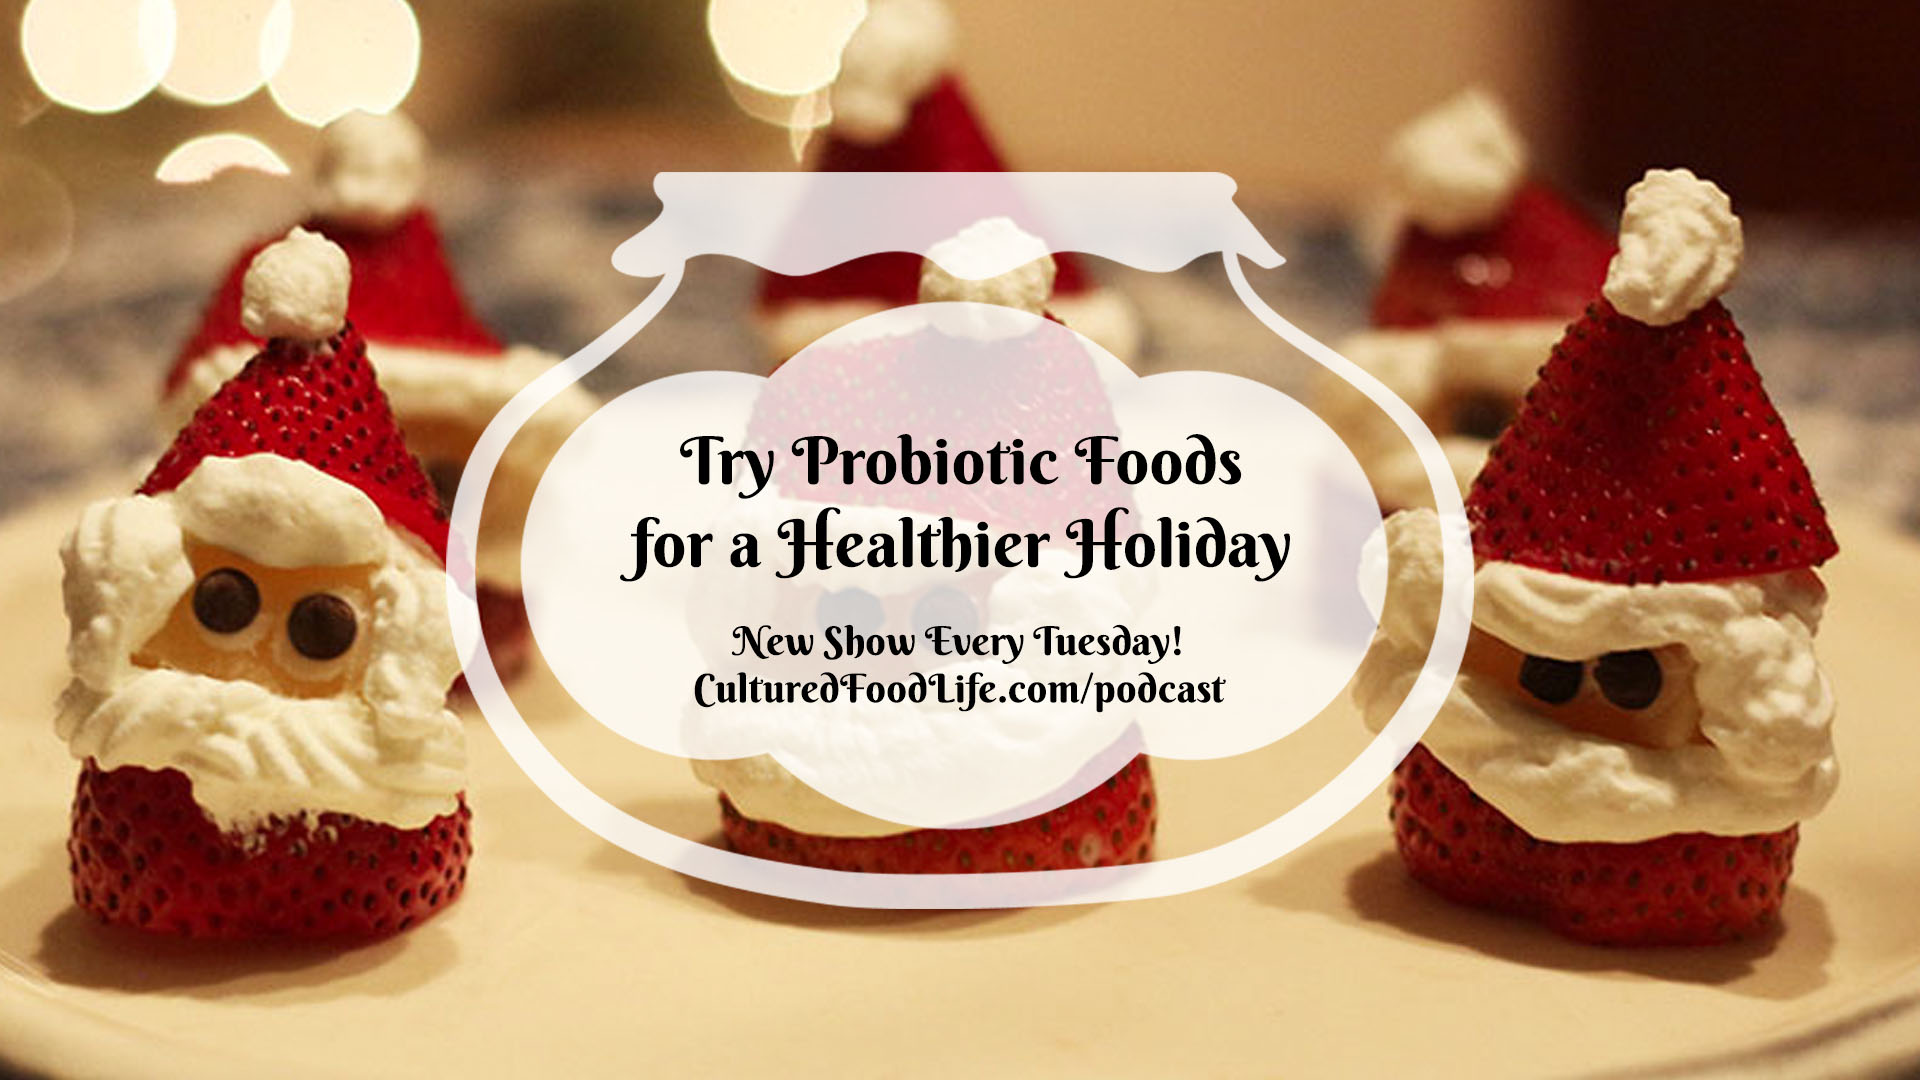 Try Probiotic Foods for a Healthier Holiday full